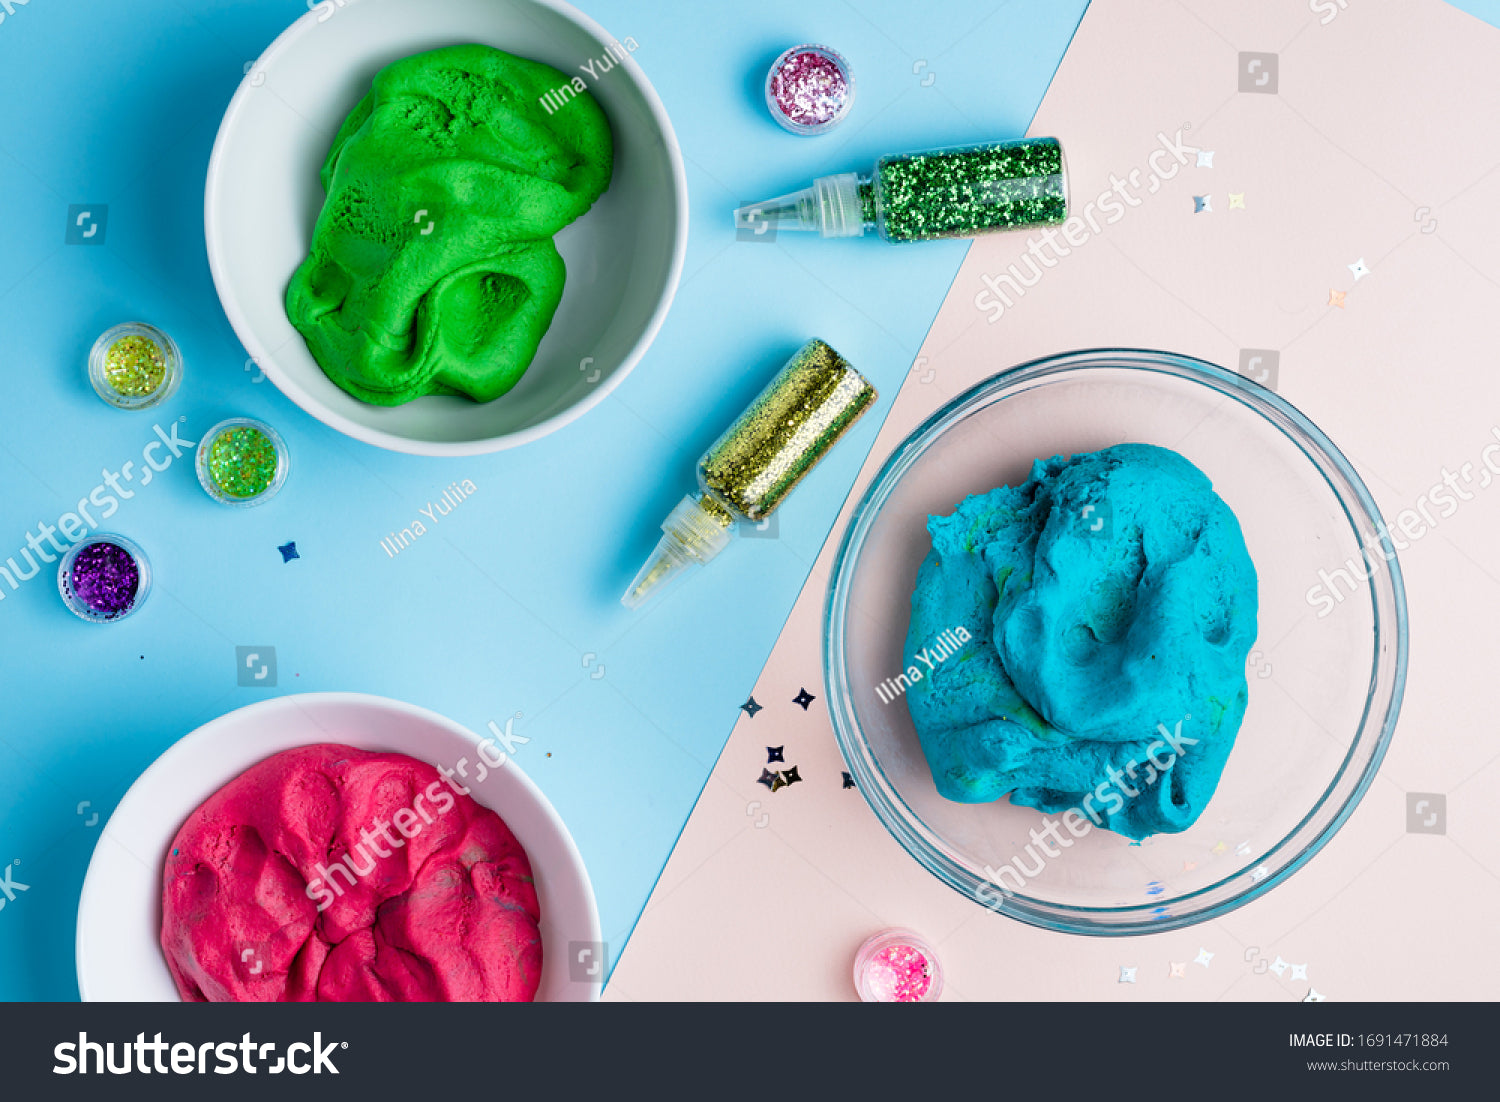 Molding clay or slime